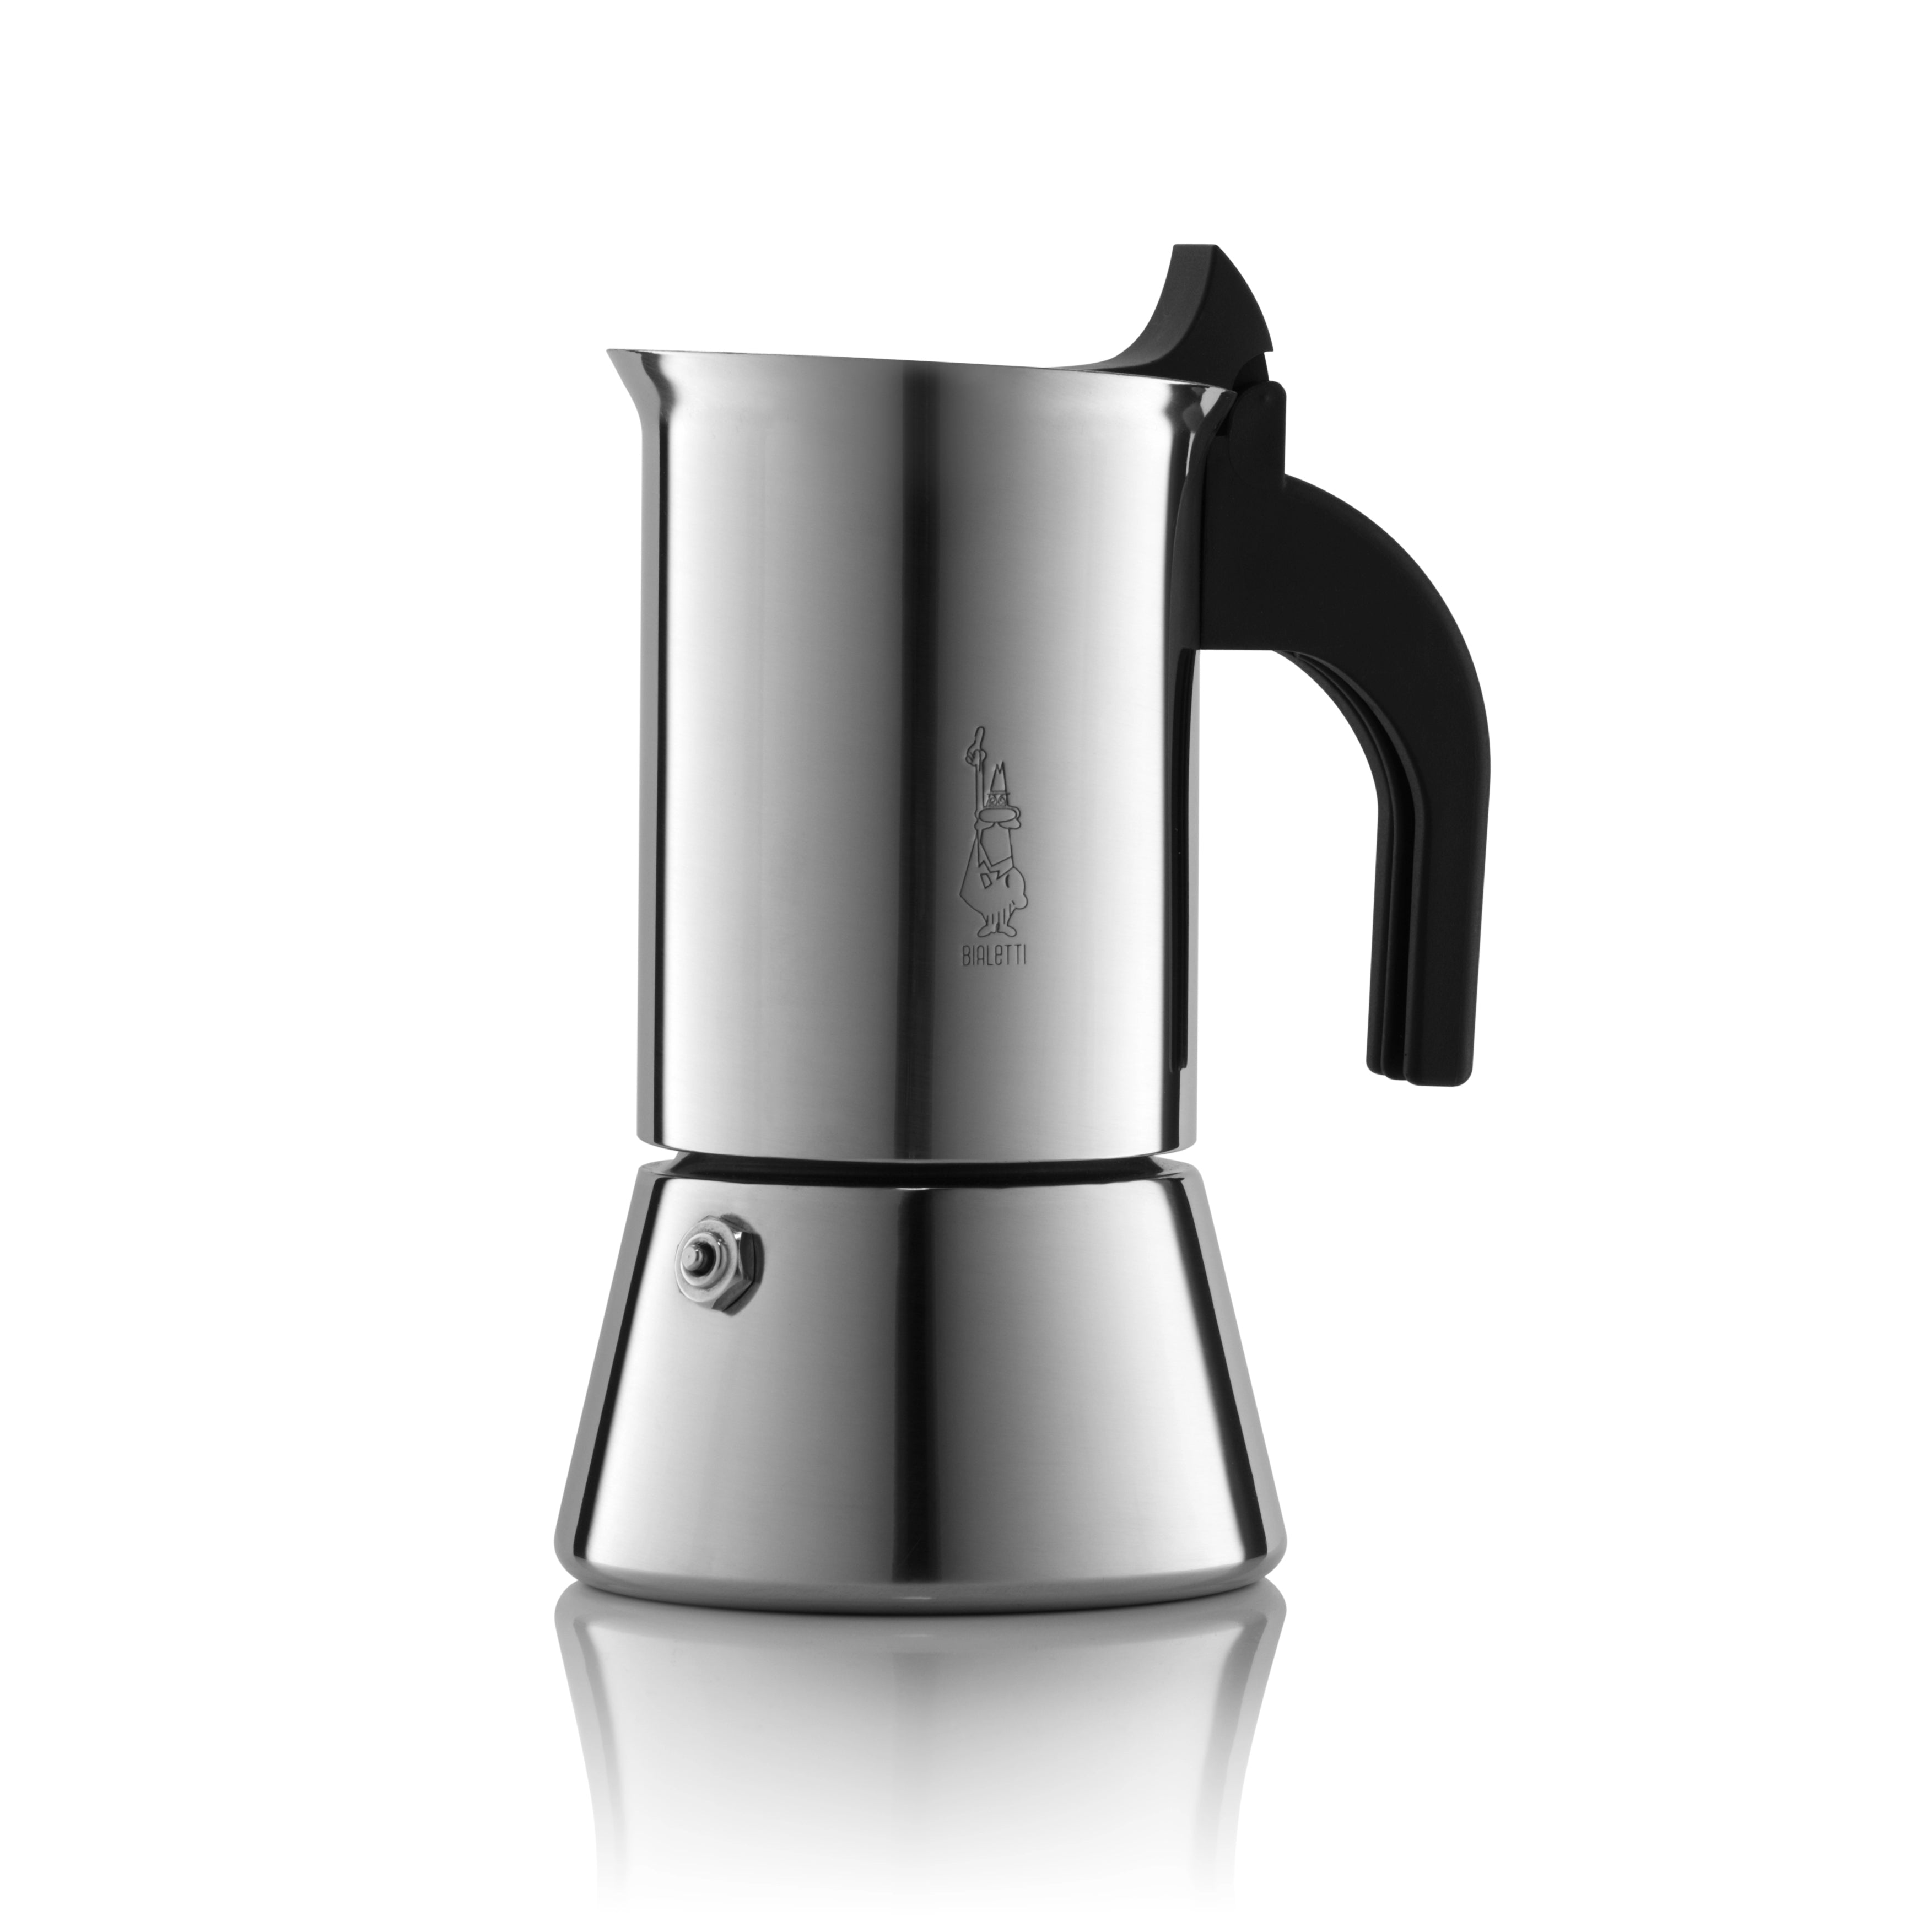 BIALETTI | Venus Induction | Stainless Steel | Stovetop Coffee Maker | 6 Cup